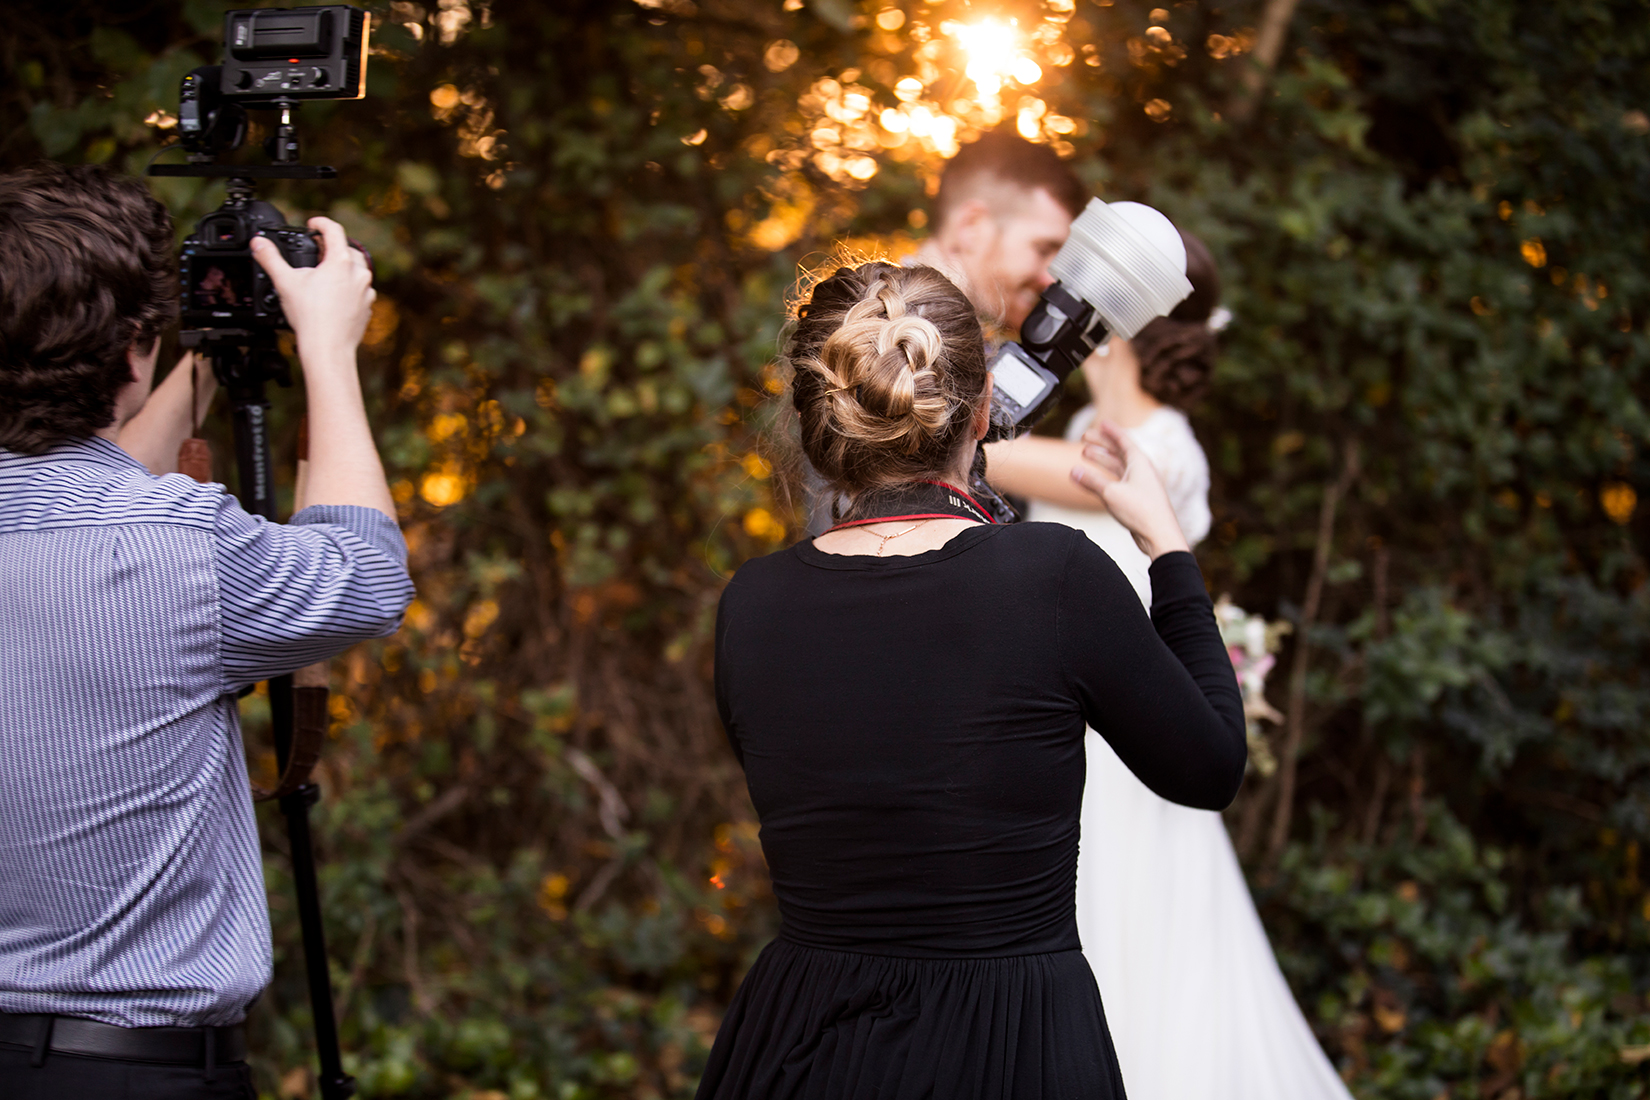 WhyWeBeganOfferingWeddingVideography